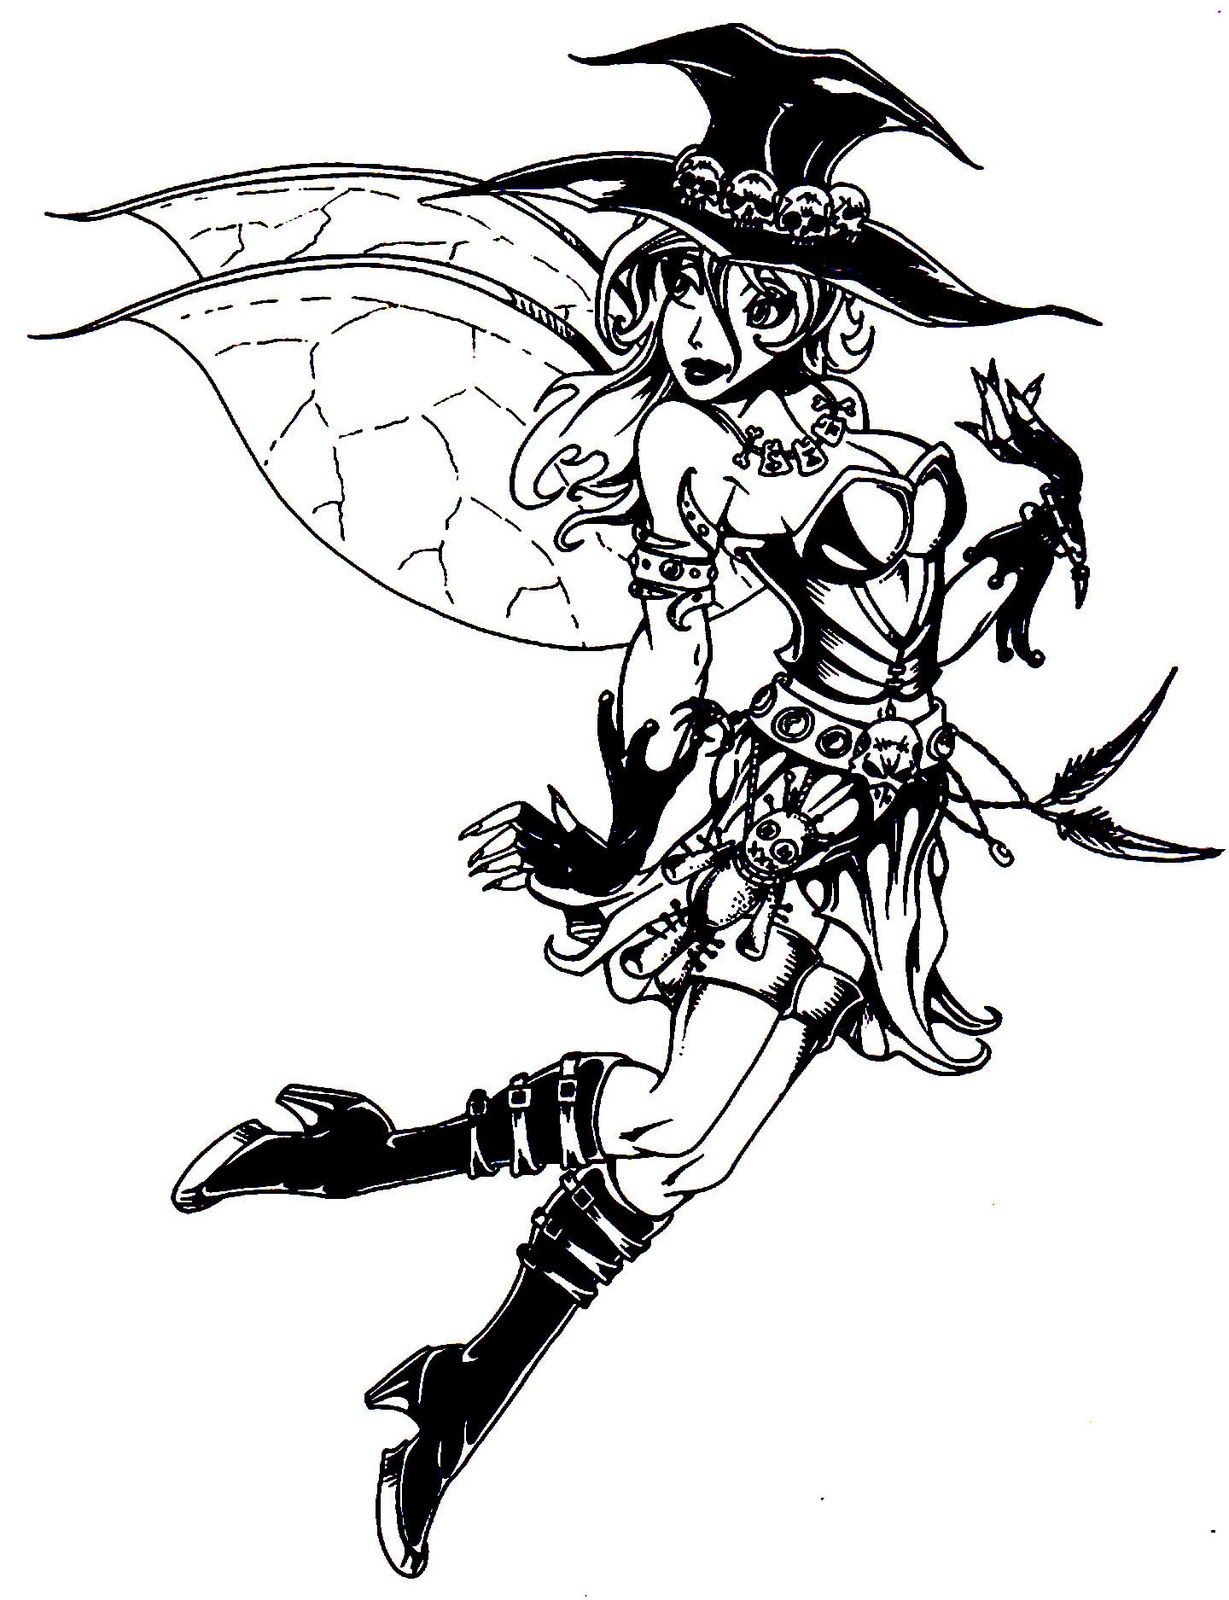 Adult Halloween Coloring Pages | Halloween Colorings | Fairies - Free Printable Coloring Pages For Adults Dark Fairies